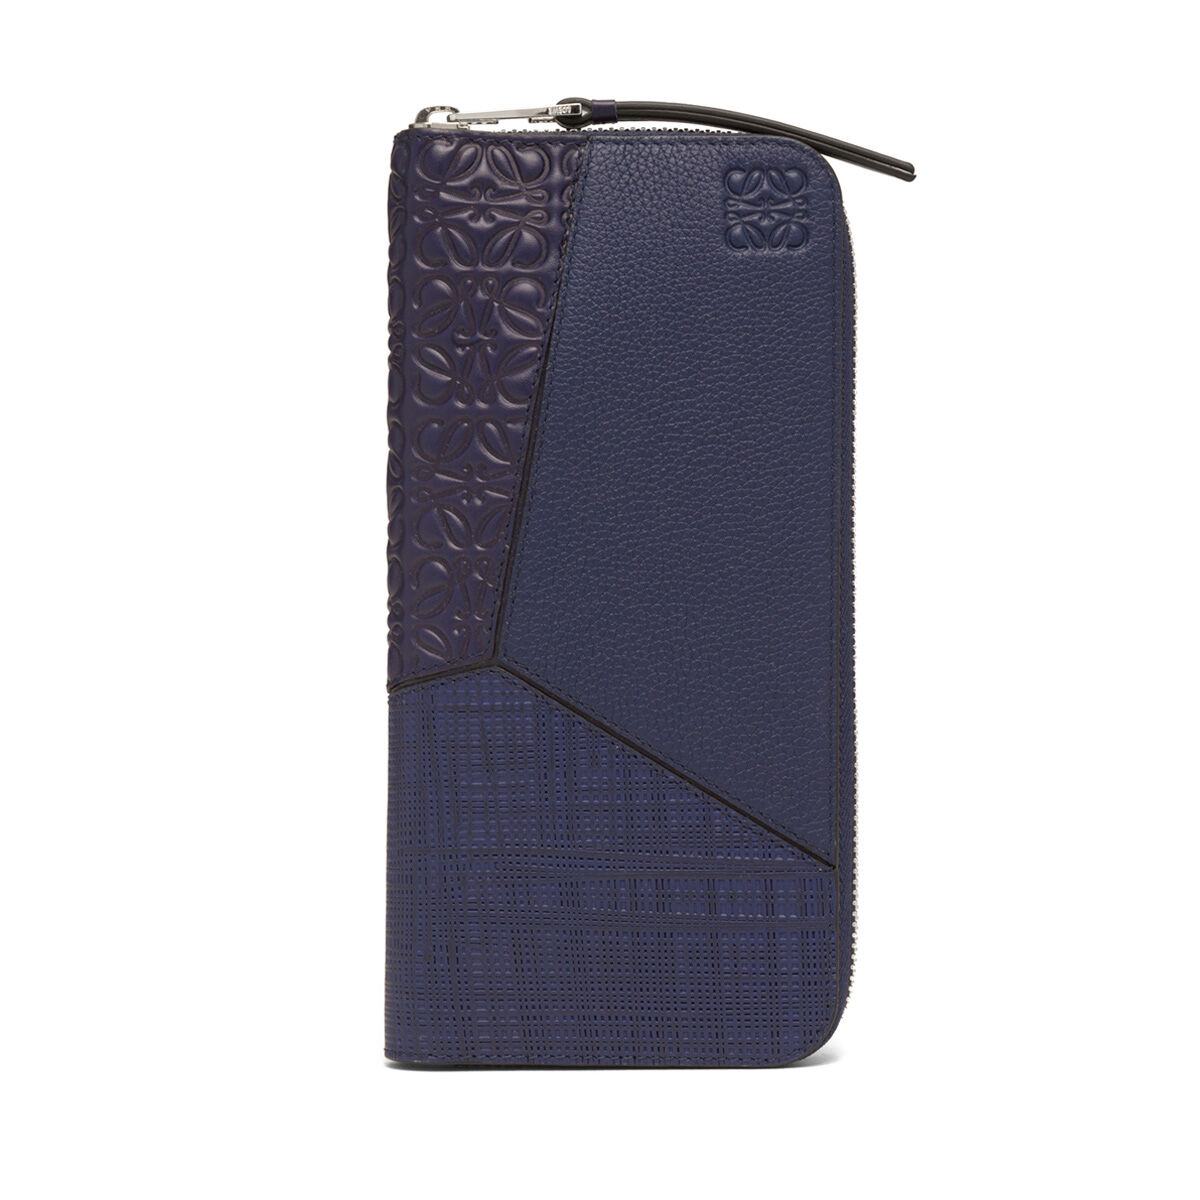 LOEWE Puzzle Multitexture Open Walle Navy Blue all